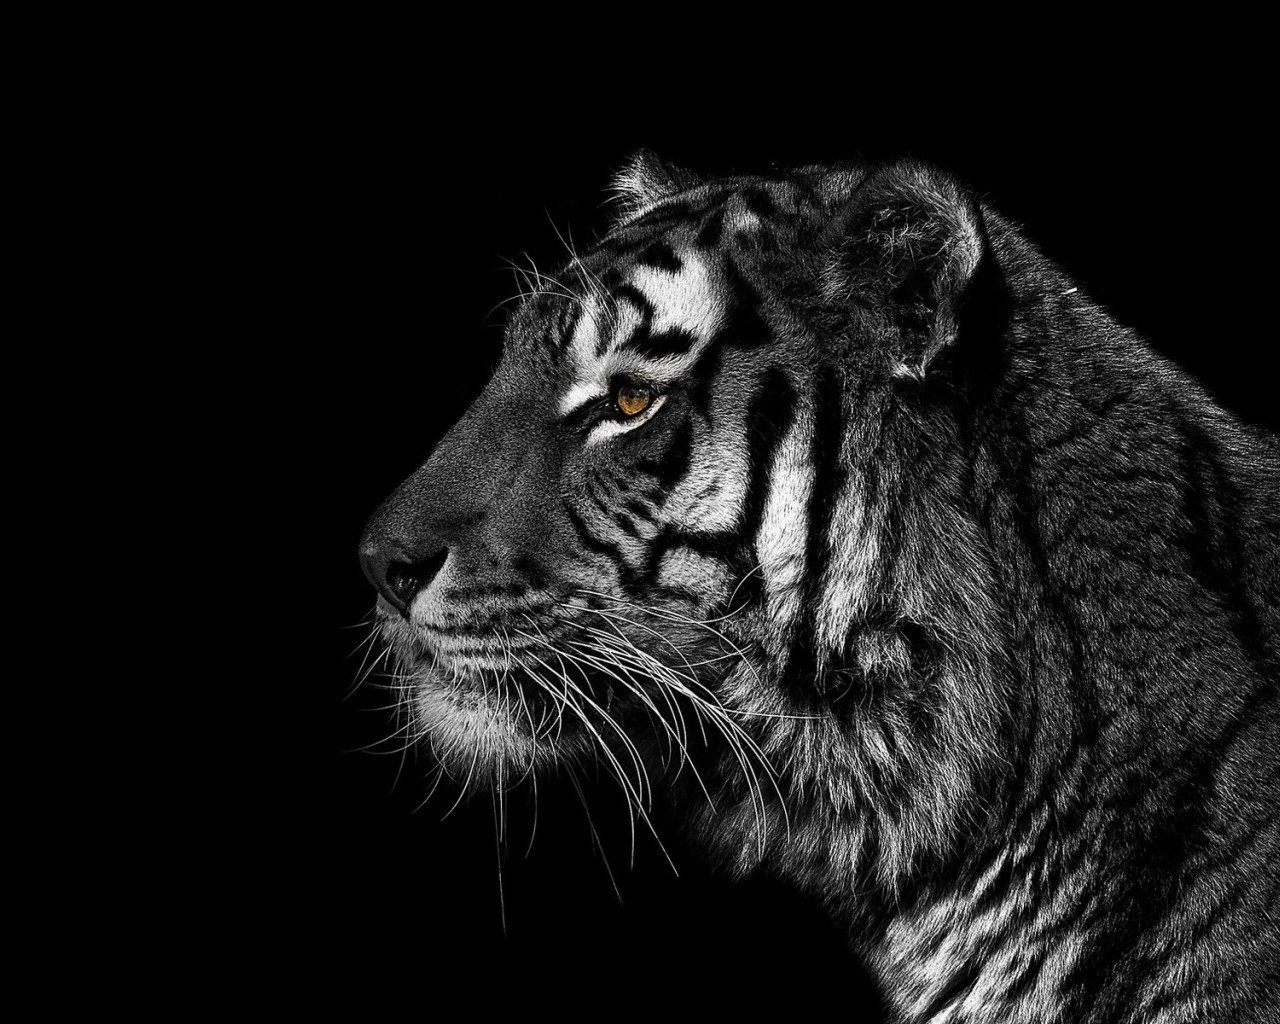 19722 download wallpaper Animals, Tigers screensavers and pictures for free